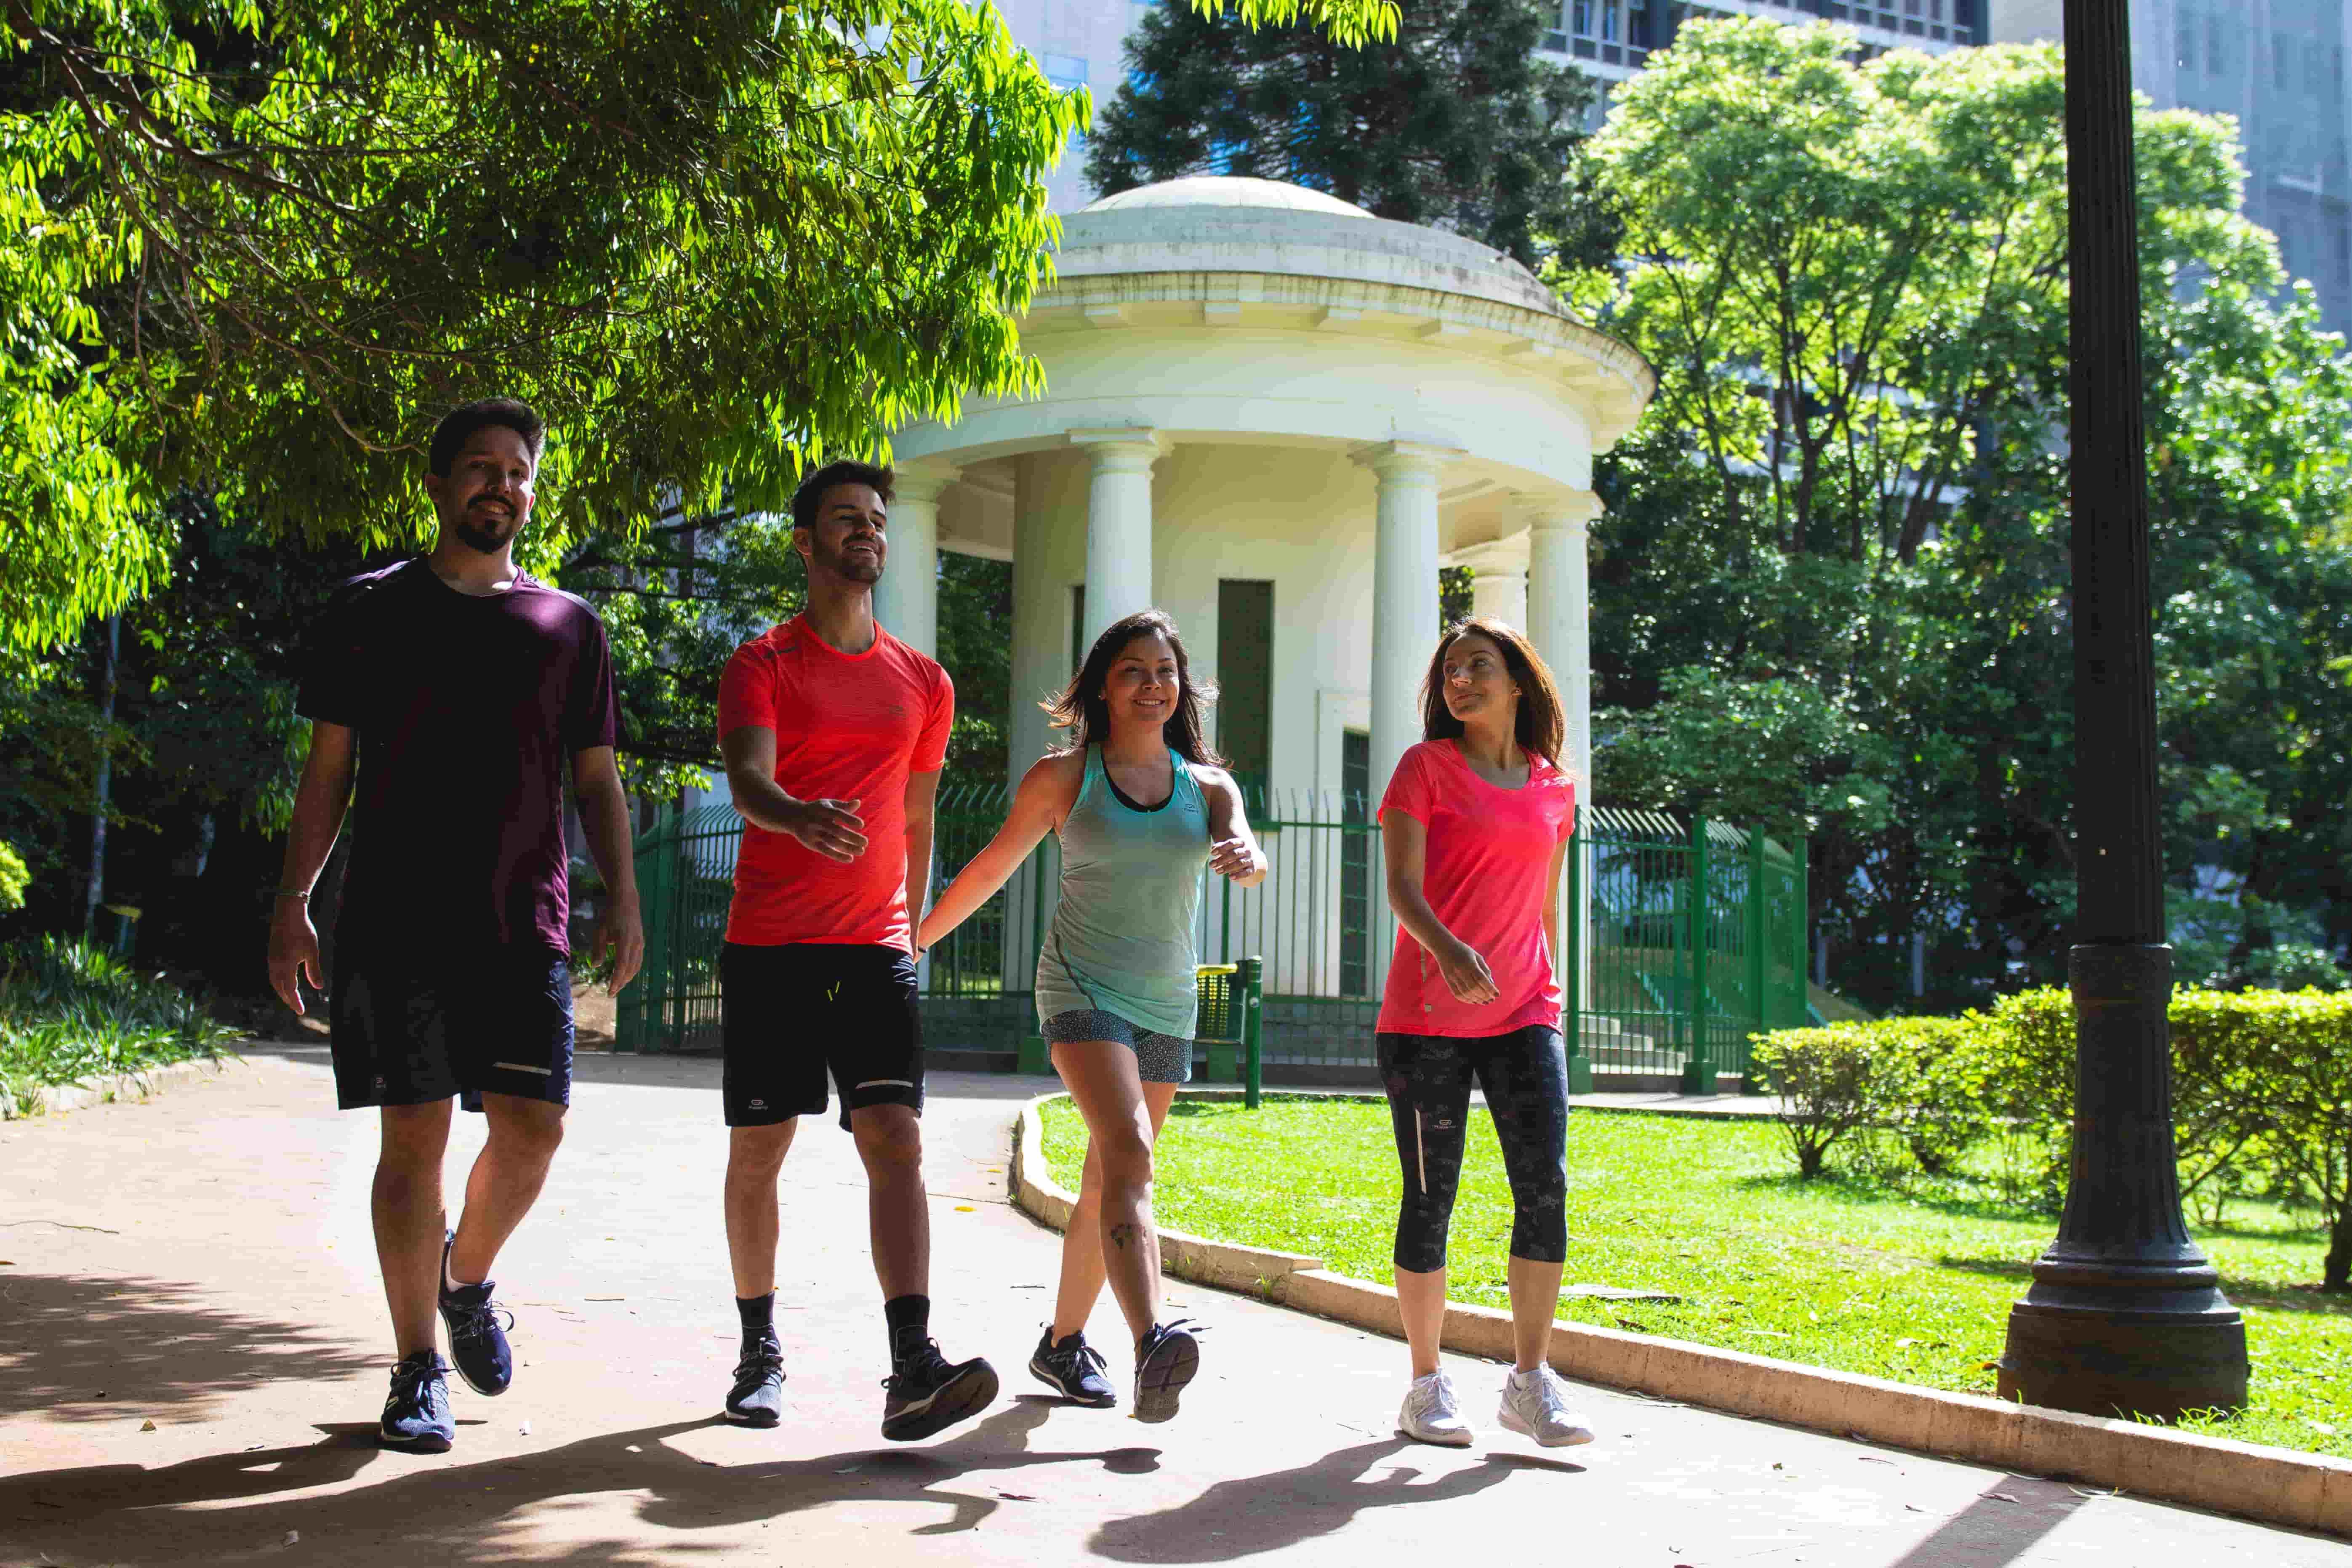 Get Back to Sports - Start with Active Walking